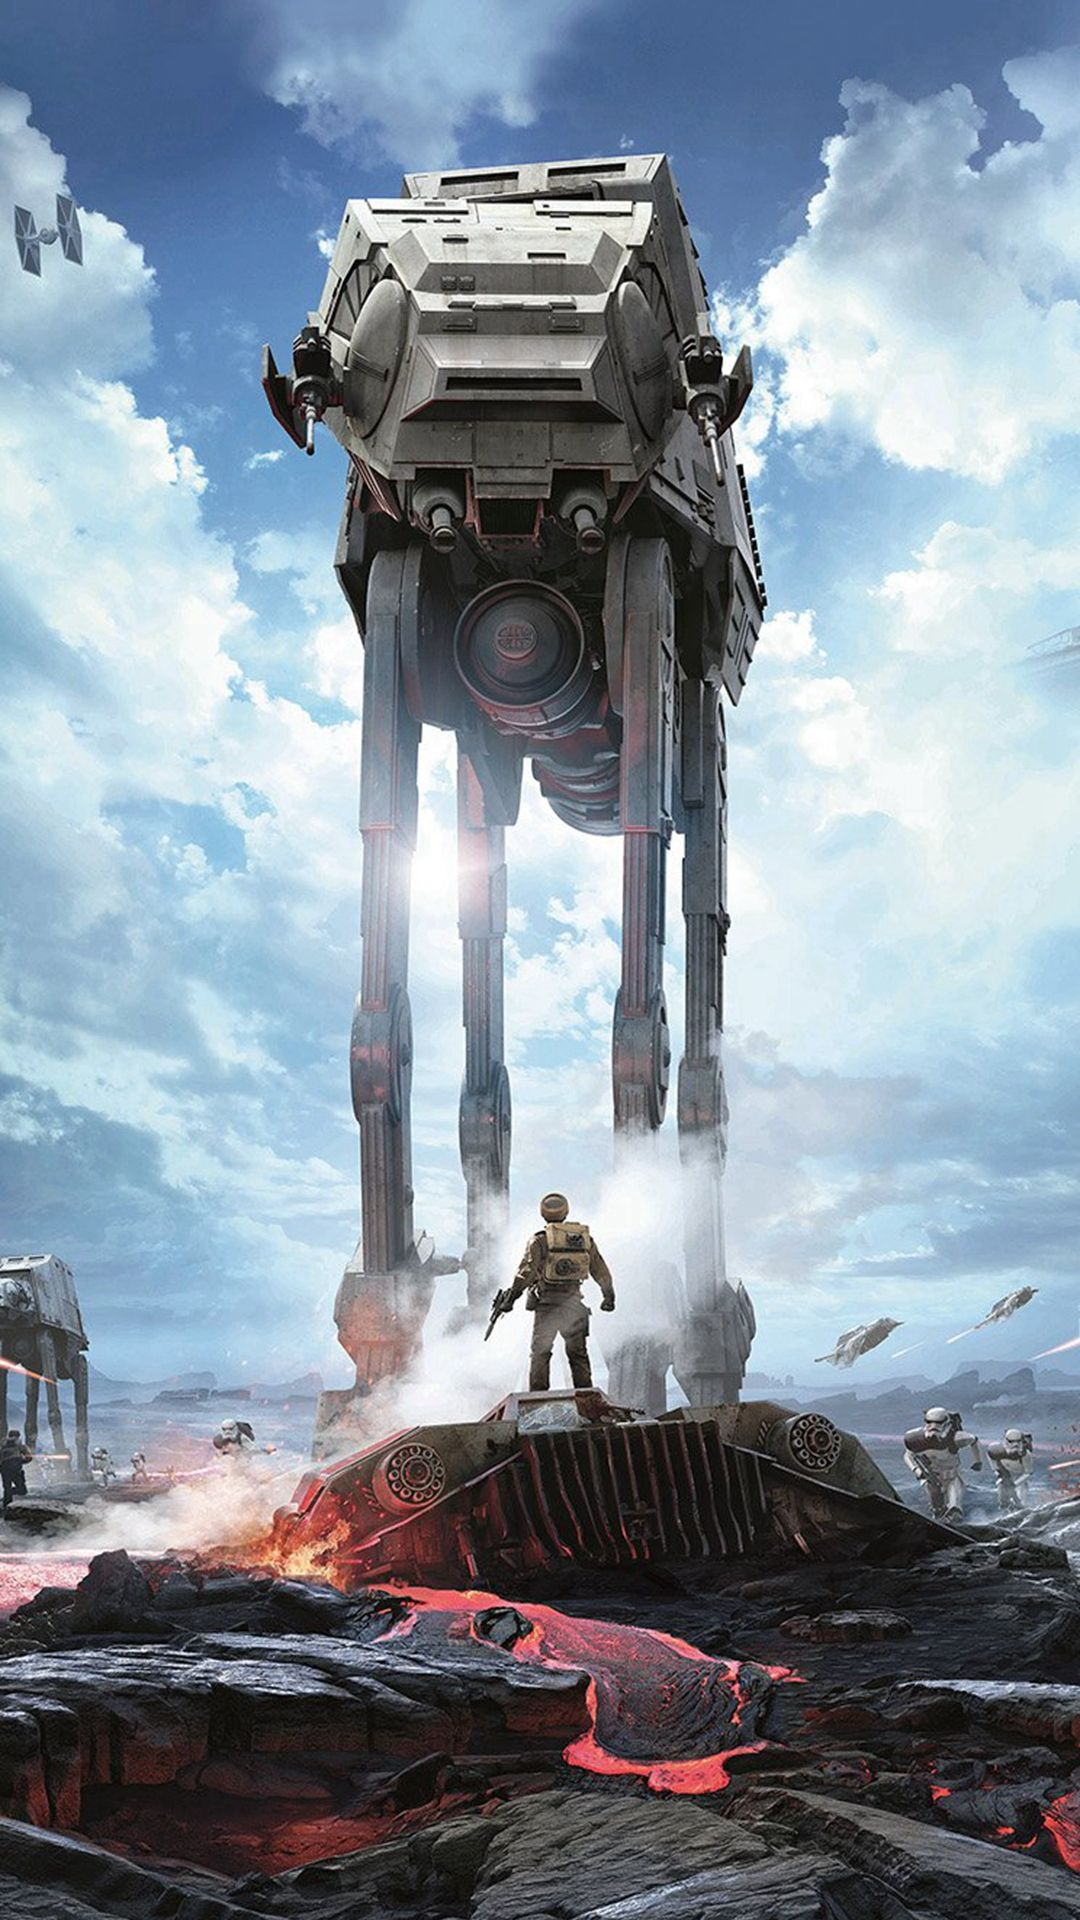 Battlefront 3 Game Nerd Awesome Art Illust Iphone 6 Plus